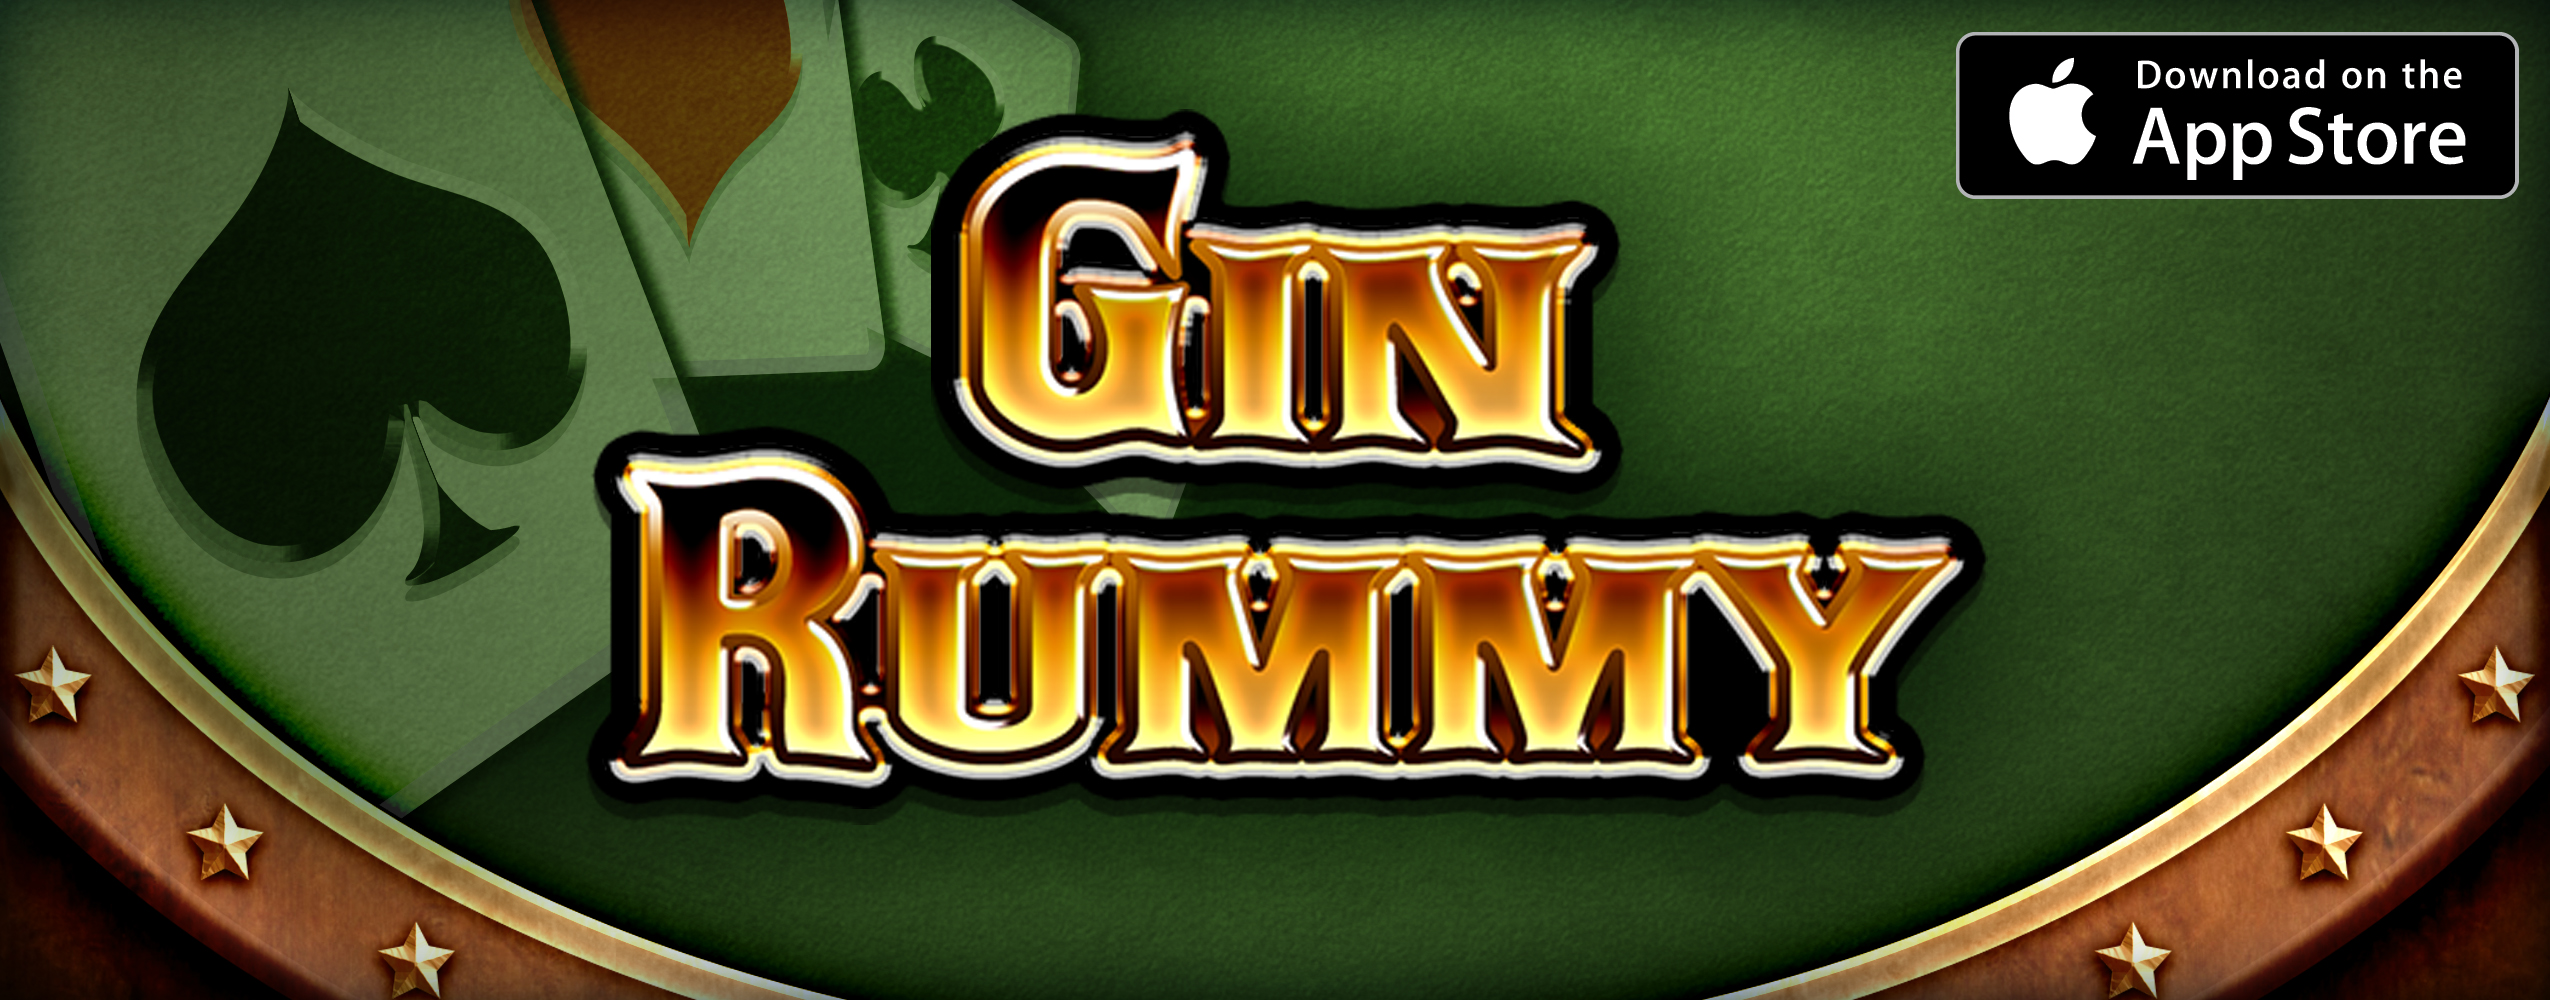 Gin Rummy game page for iPhone and iPad